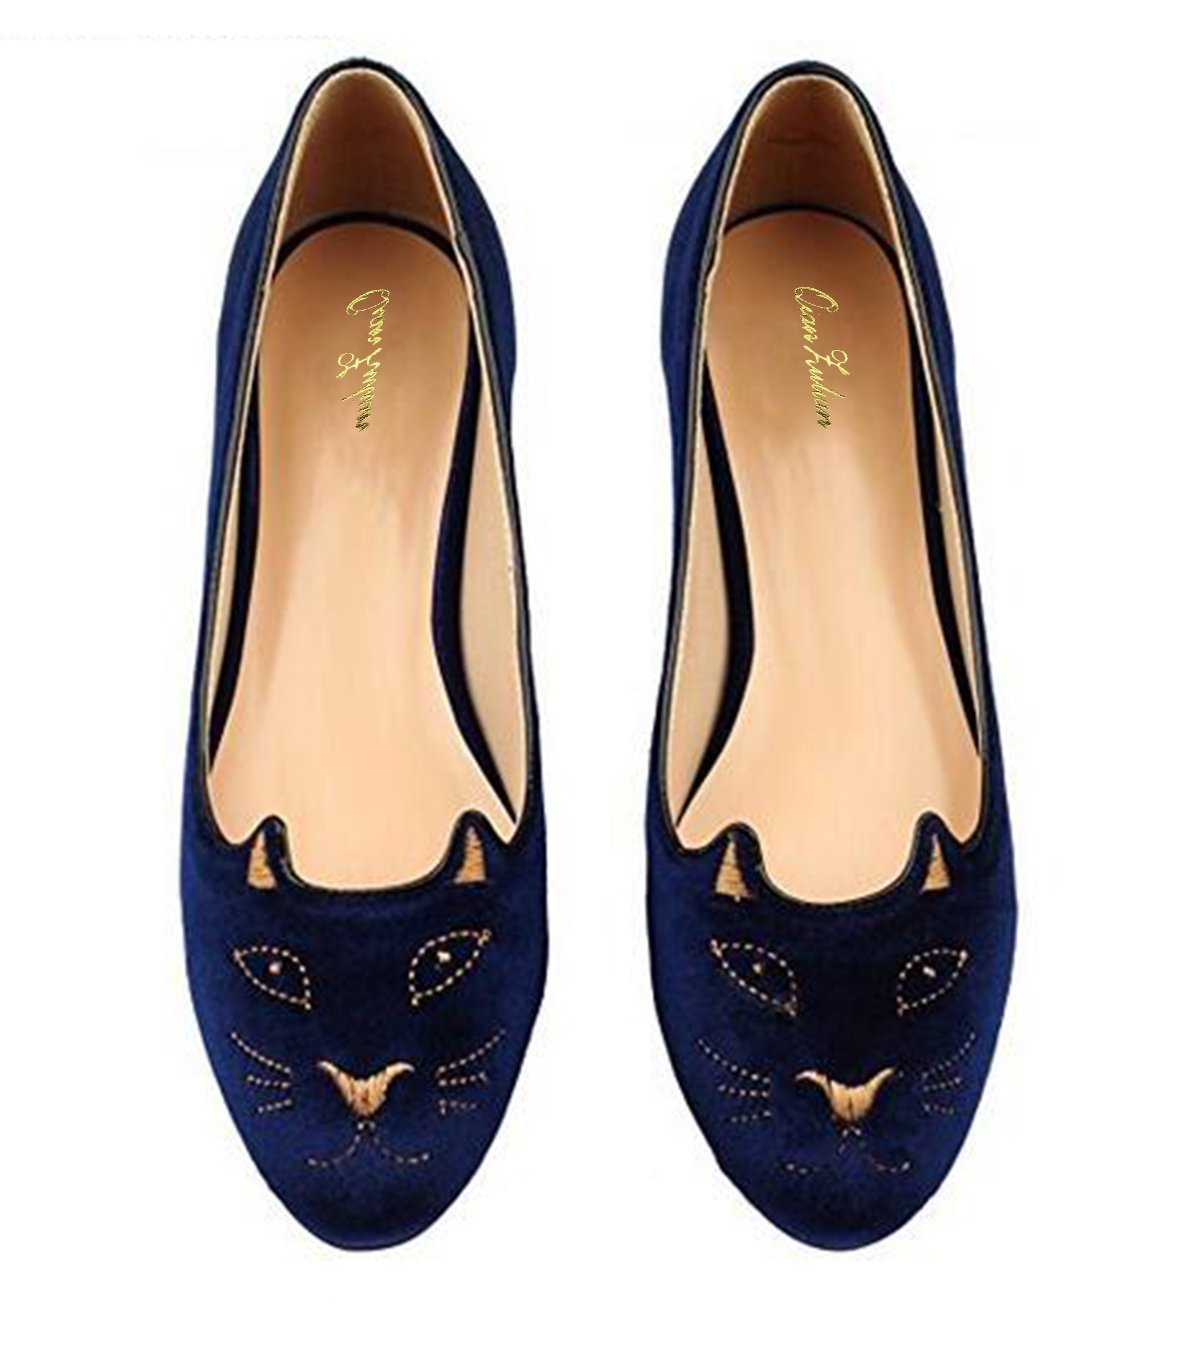 QianZuLian Womens Flats Cat Shape Pumps Round head Slip On Dress Shoes Comfort for Home Leisure On foot B0757SR16V 7.5 B(M) US|Dark Blue